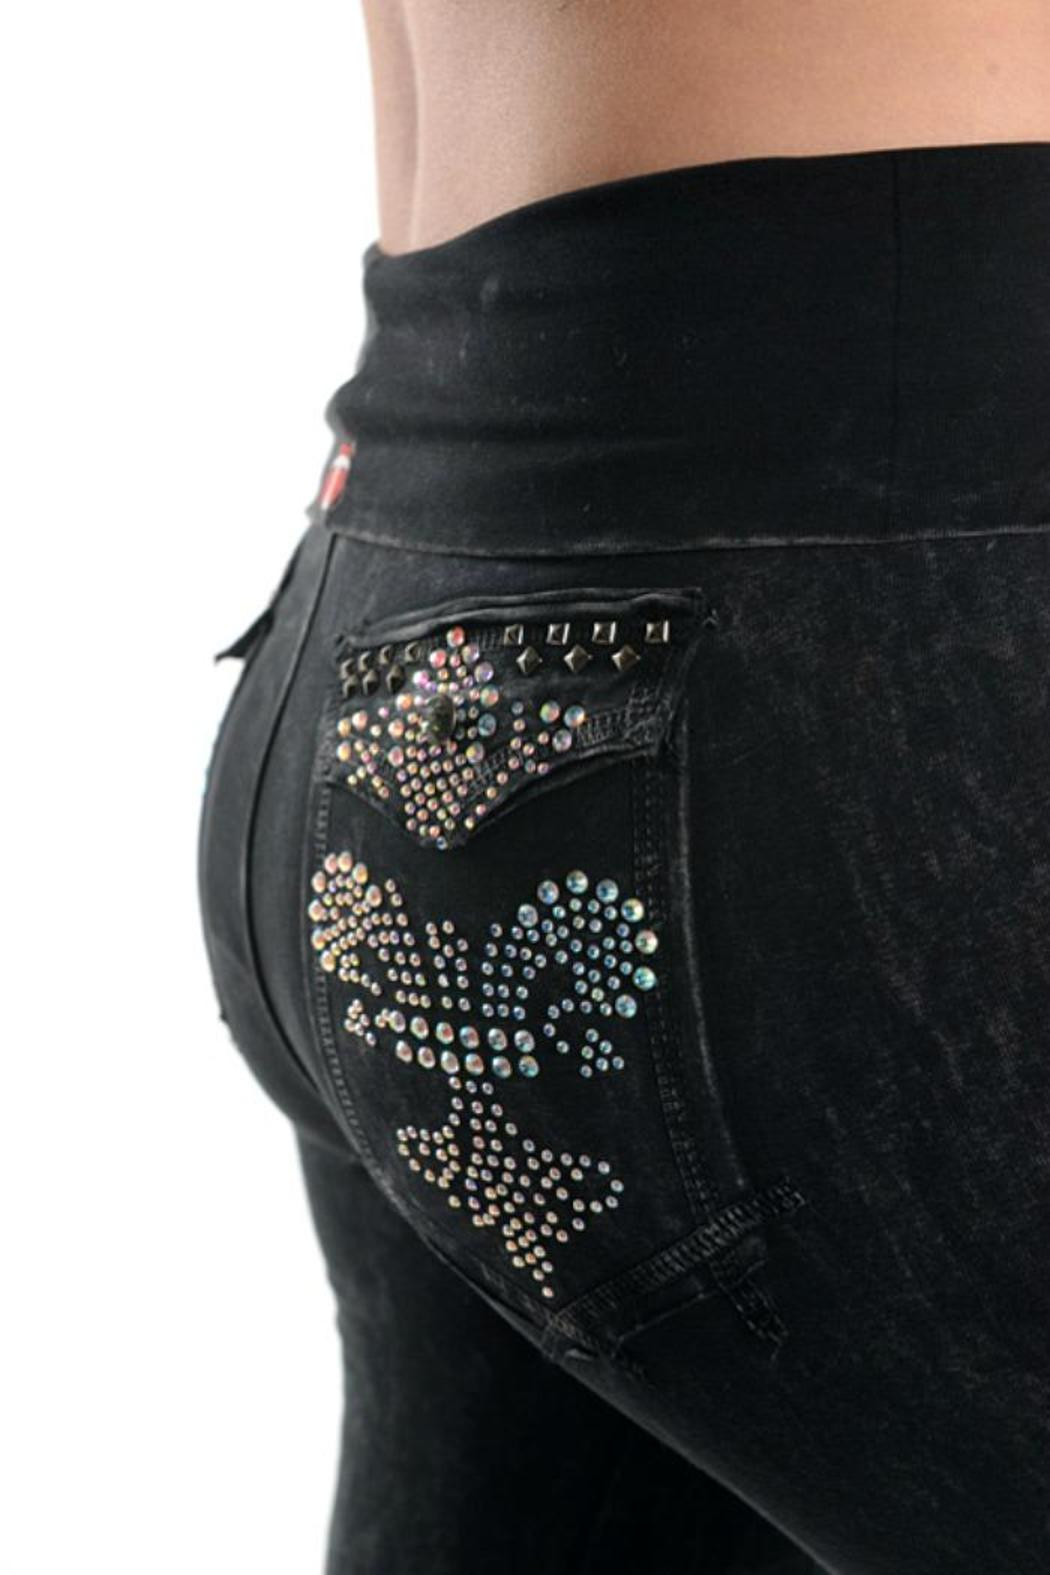 L-5XL Womens Metal Ring Embellished Leggings Yoga Pants Work Out Jeggings Gym. $ Free shipping. Ladies Sport Leggings Sexy Metal Ring Embellished Yoga Pants Work Out Size L-5XL. $ Free shipping. Plus Size XL-5XL Sexy Womens Lace Pants Sheer Leggings Work out Yoga Pants Seller Rating: % positive.